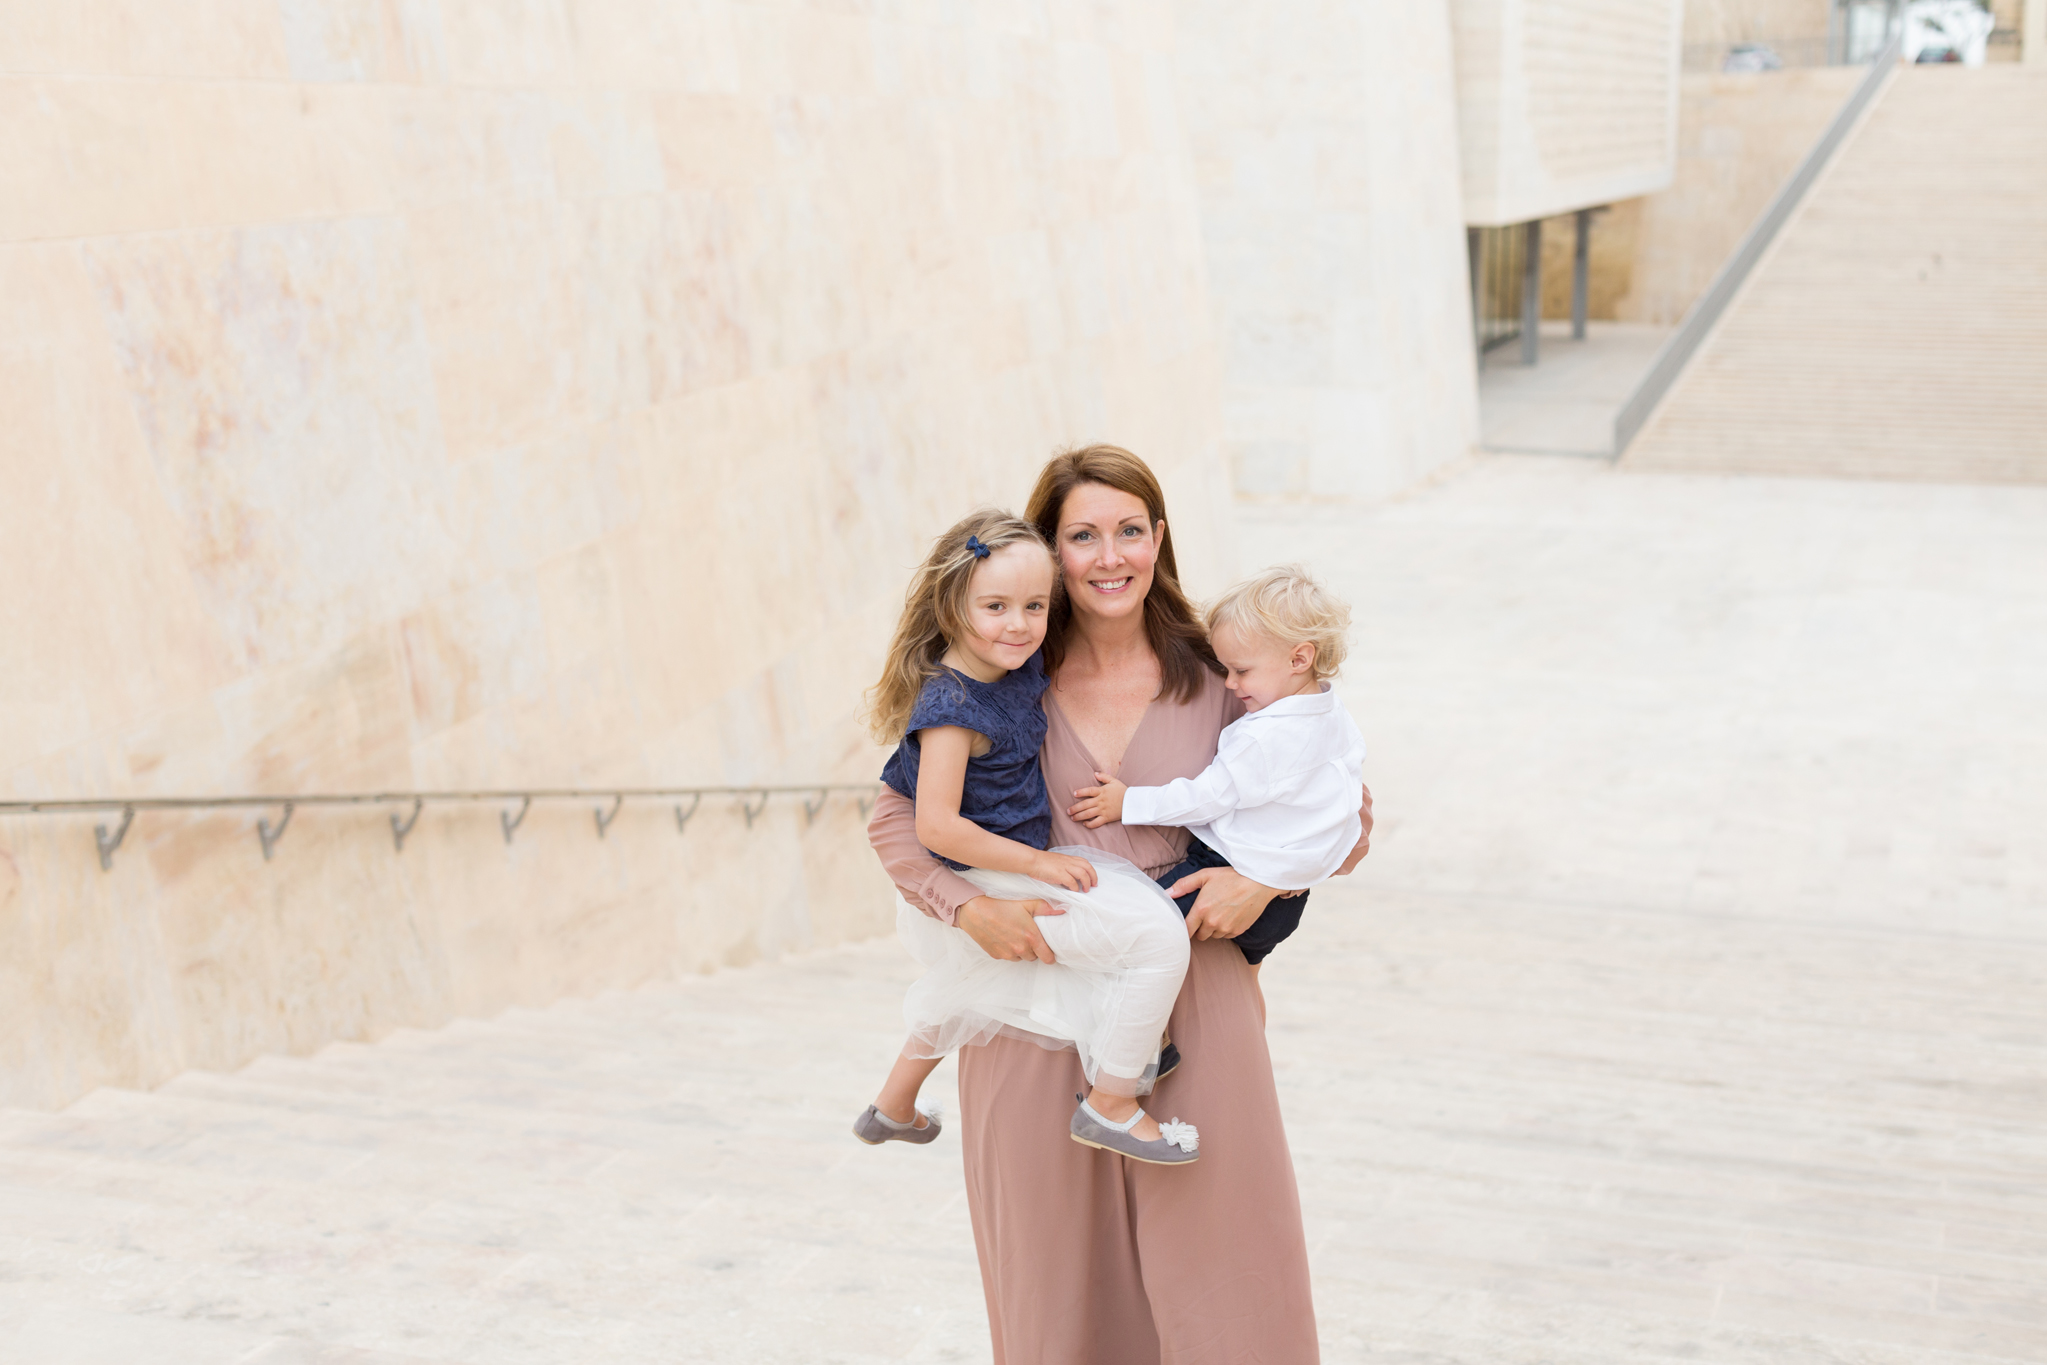 family photographer singapore, mother and child photoshoot, lifestyle family session, natural light